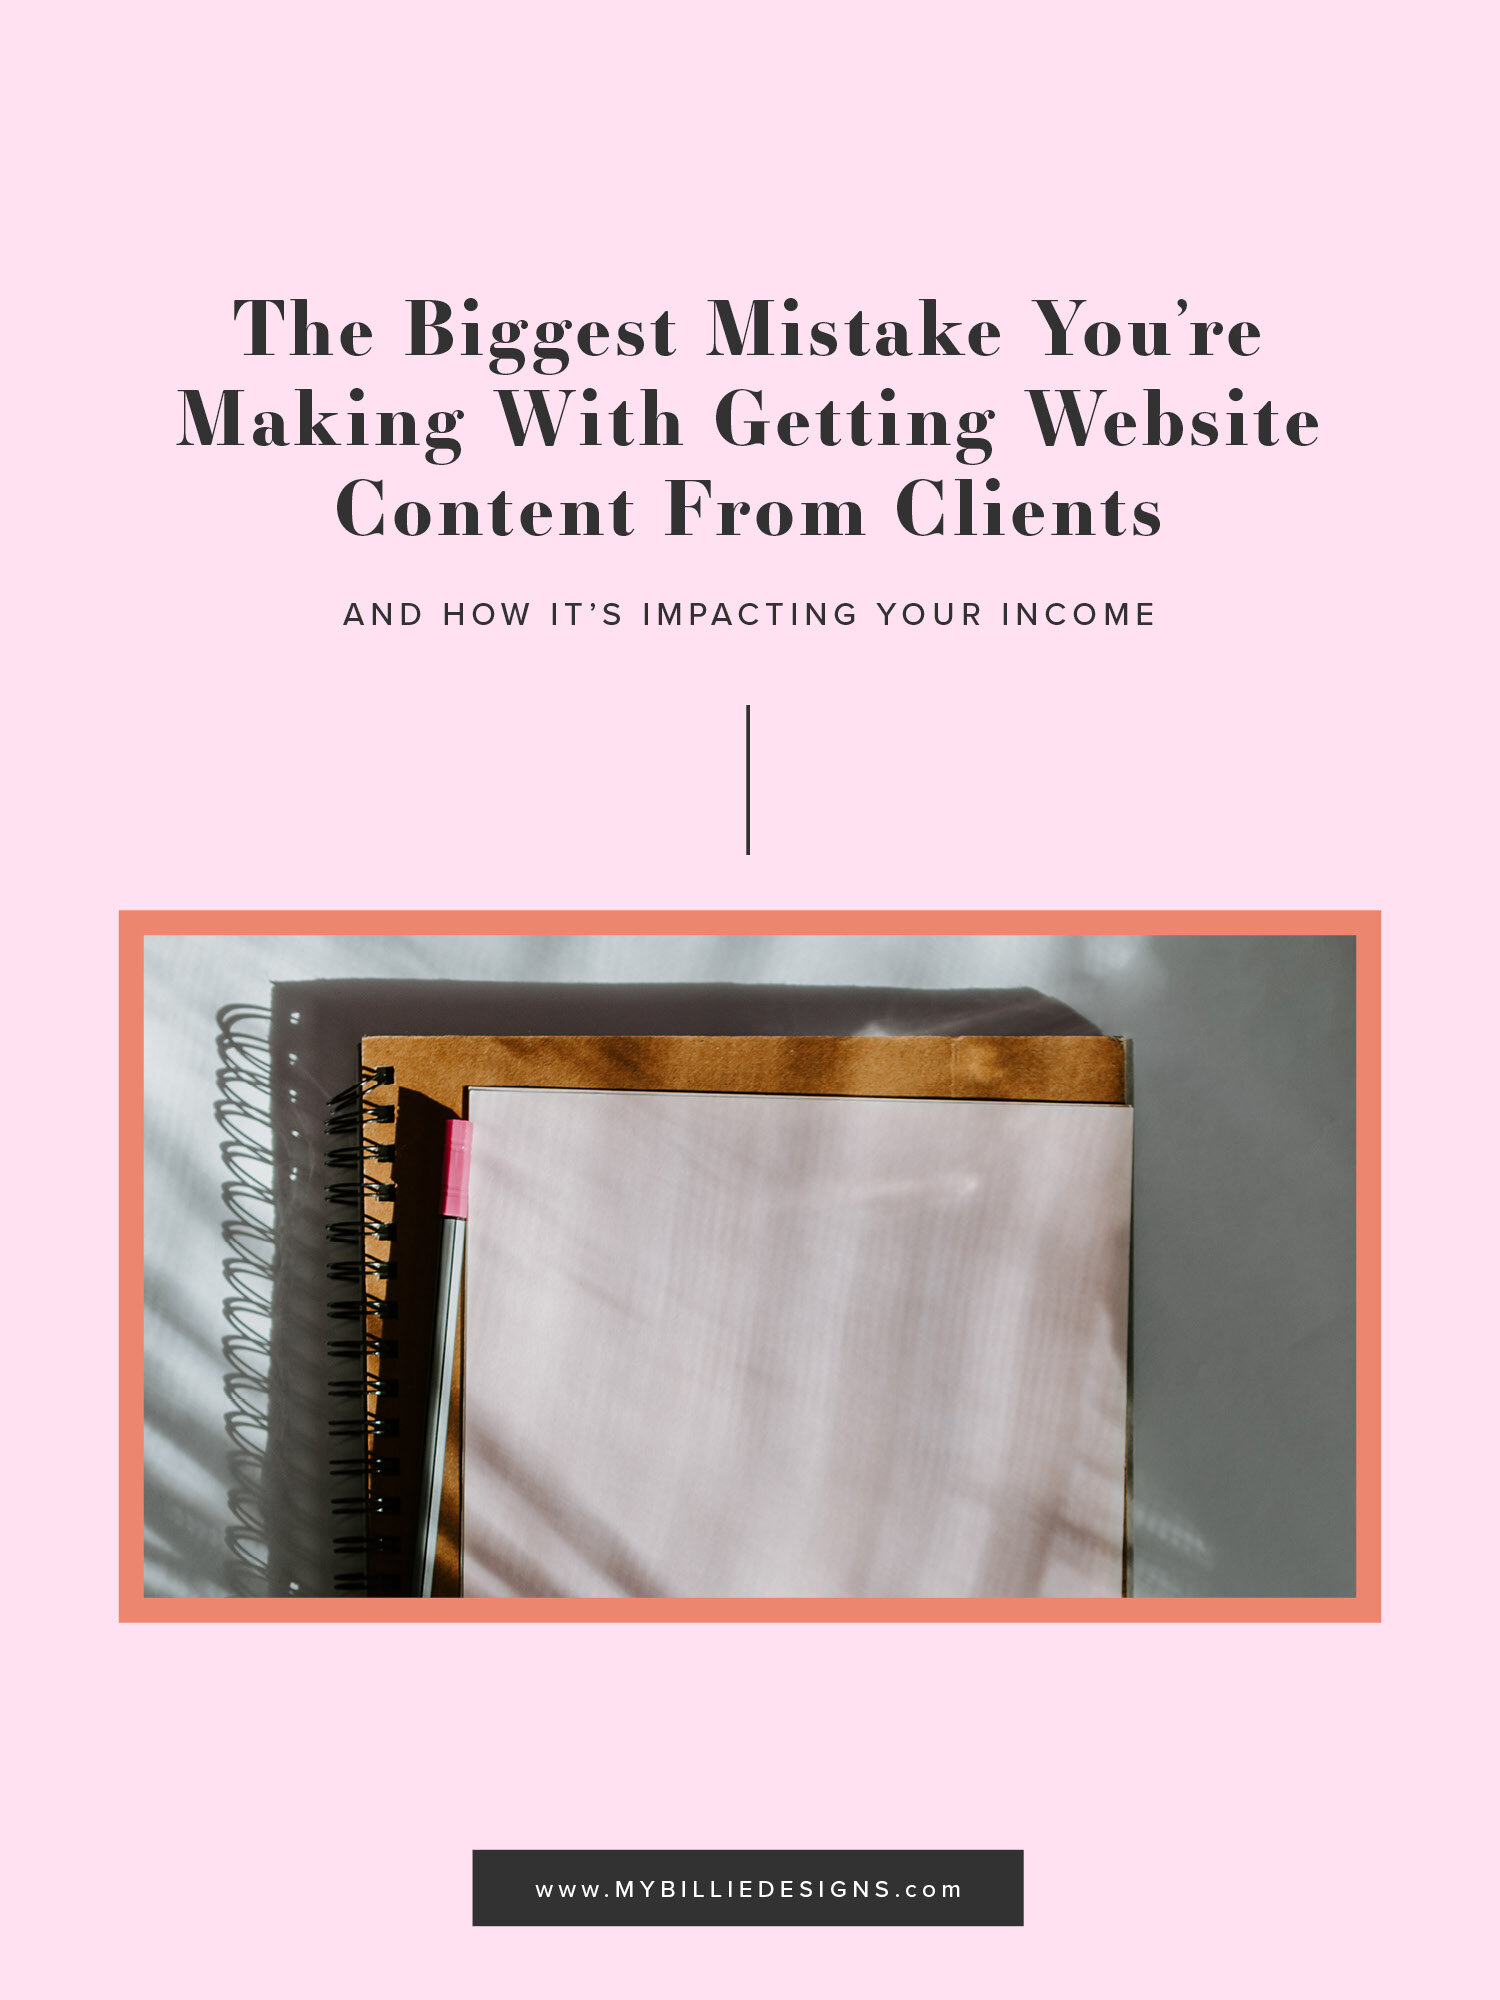 The Biggest Mistake You're Making With Getting Website Content From Clients